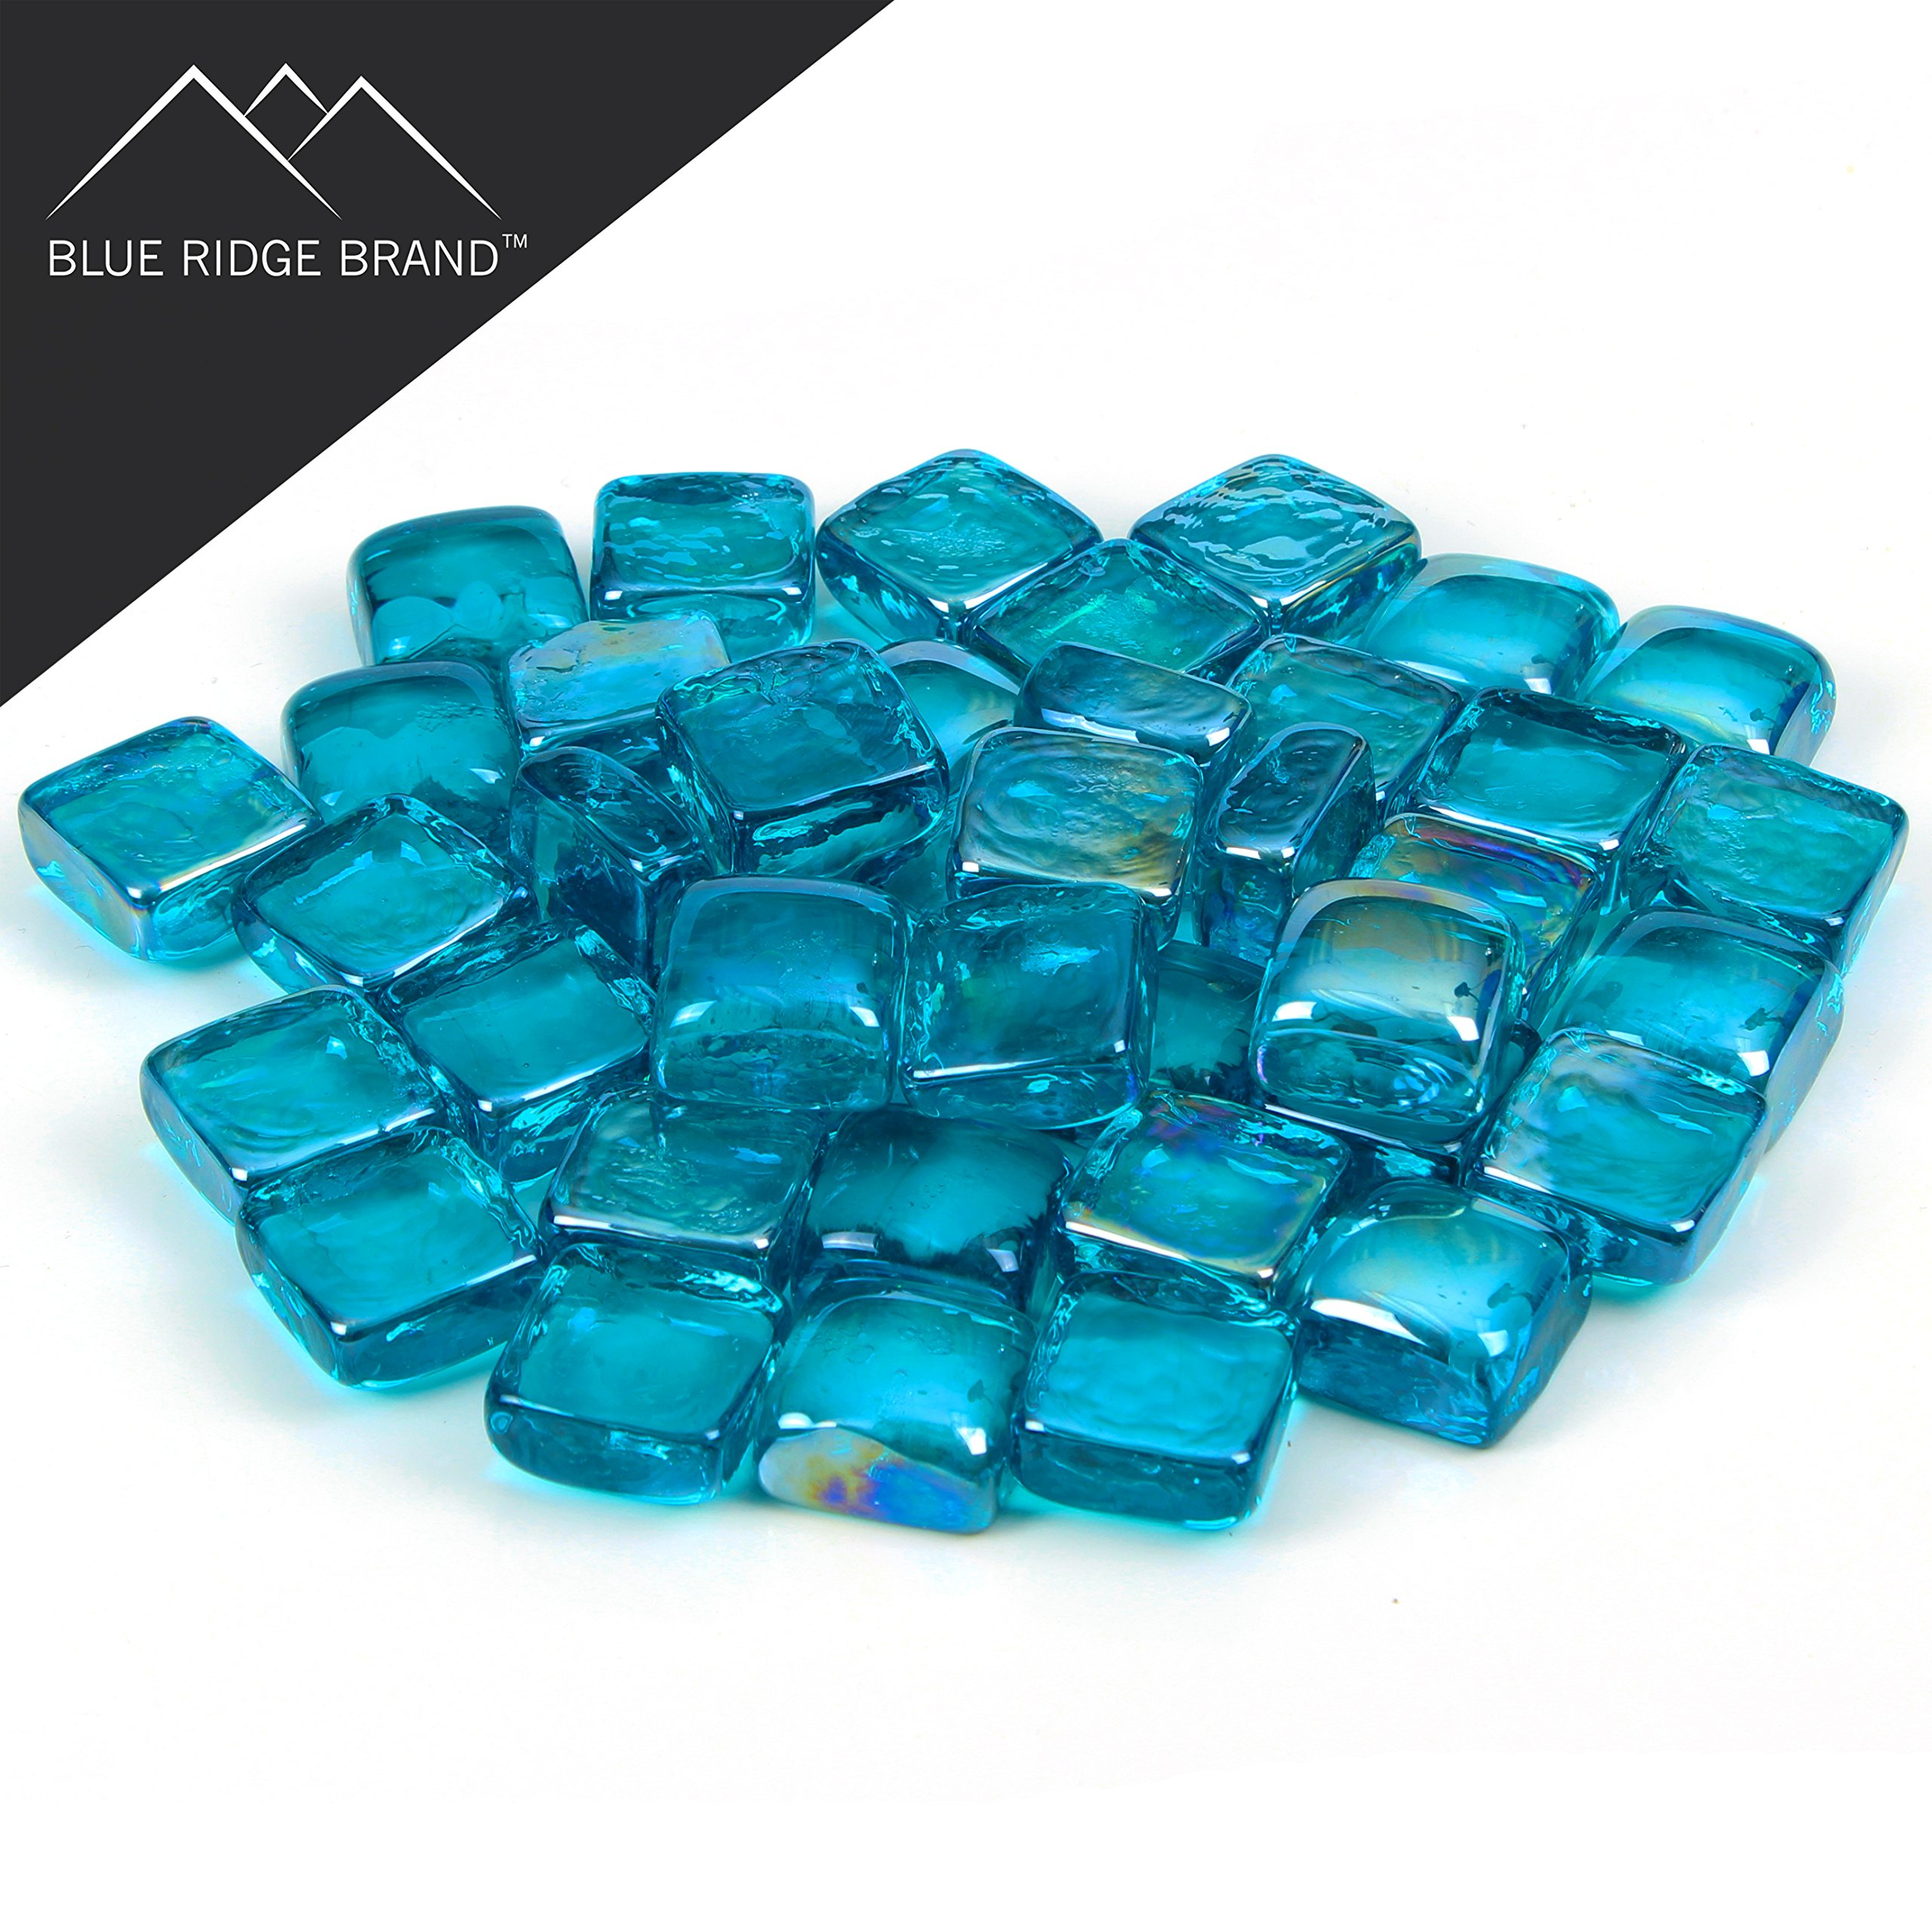 Blue Ridge Brand trade; Aqua Reflective Fire Glass Cubes - 20-Pound Professional Grade Fire Pit Glass - 3/4'' Reflective Glass for Fire Pit and Landscaping by Blue Ridge Brand (Image #2)